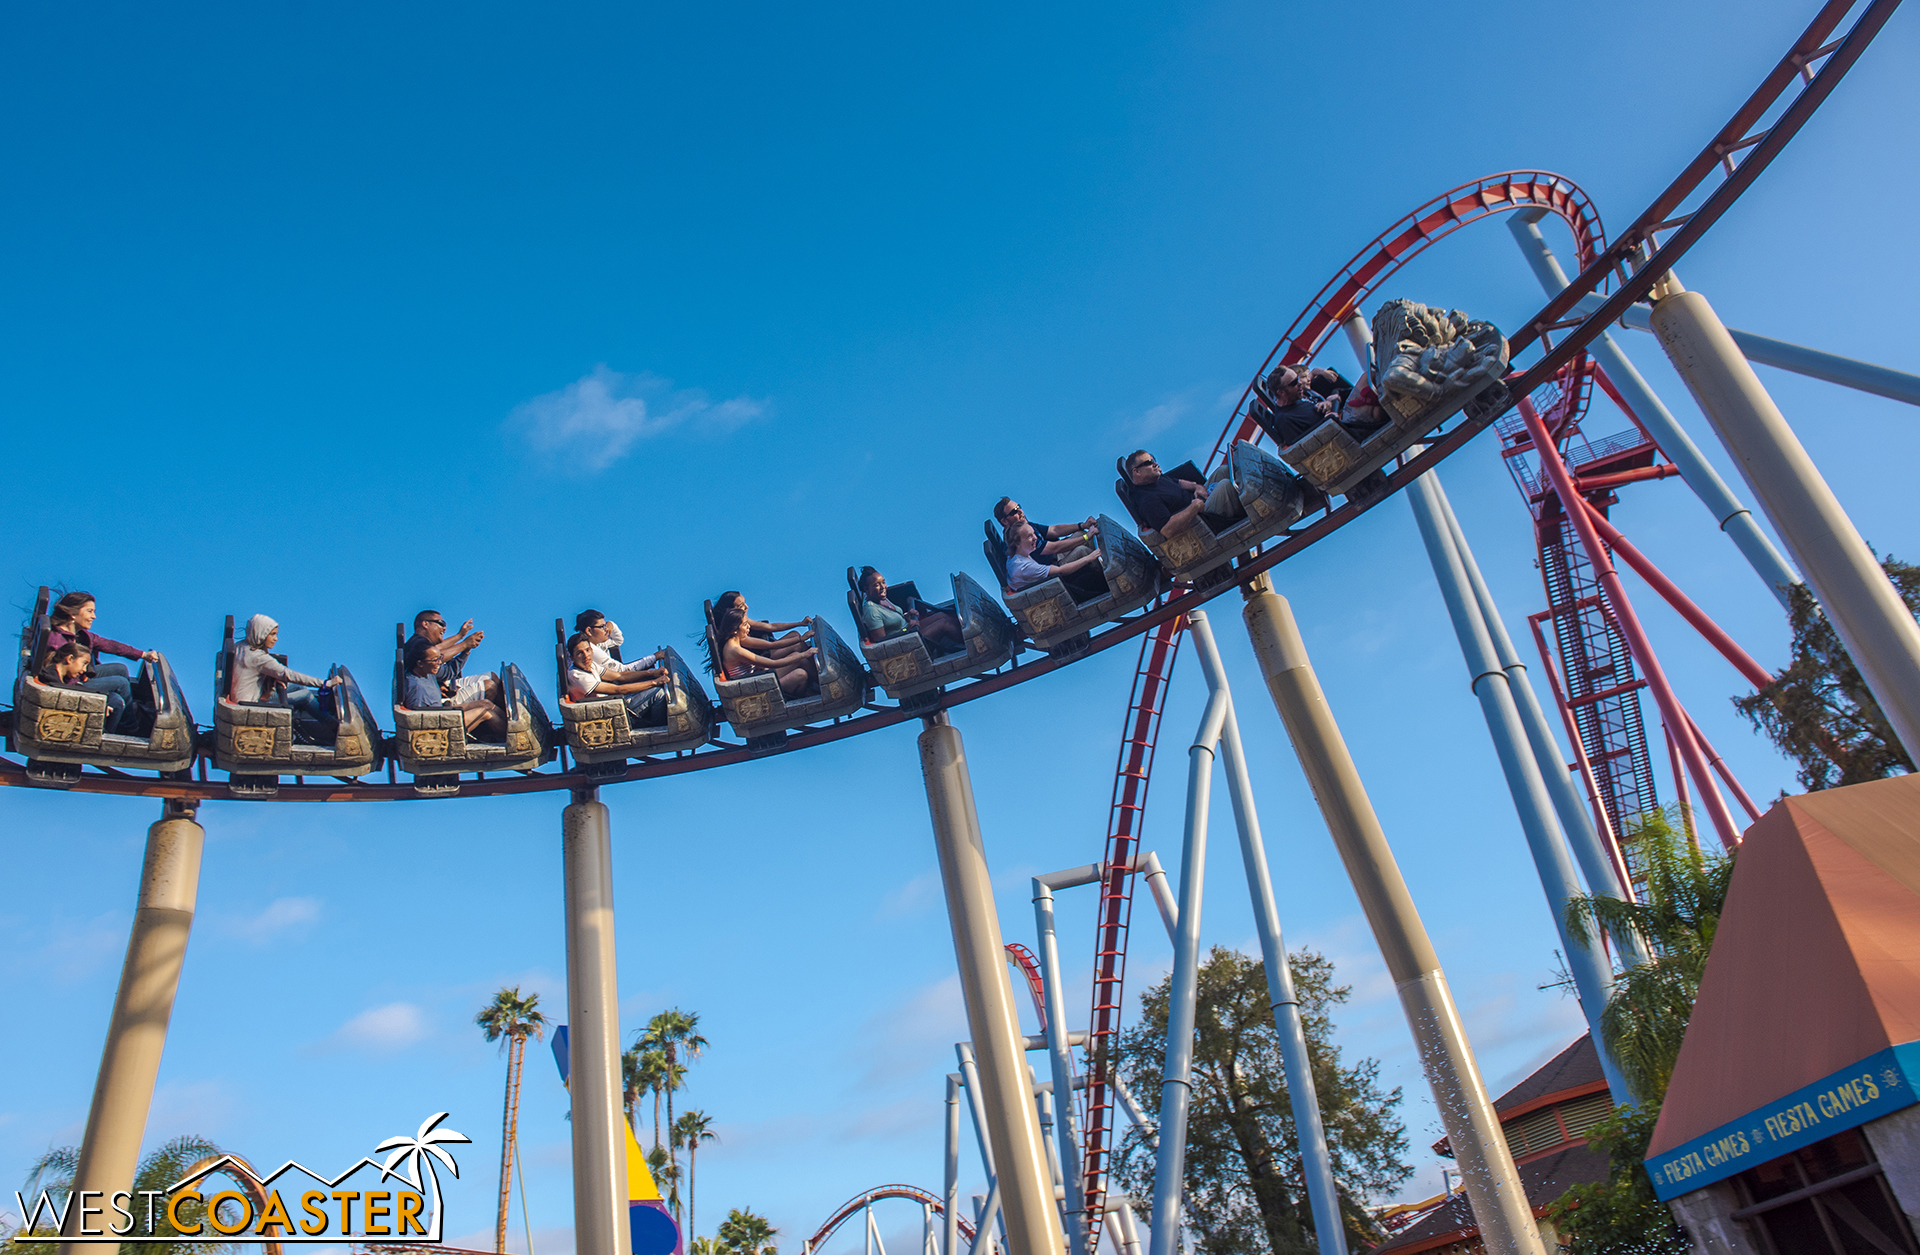 Flying by Silver Bullet in the background.